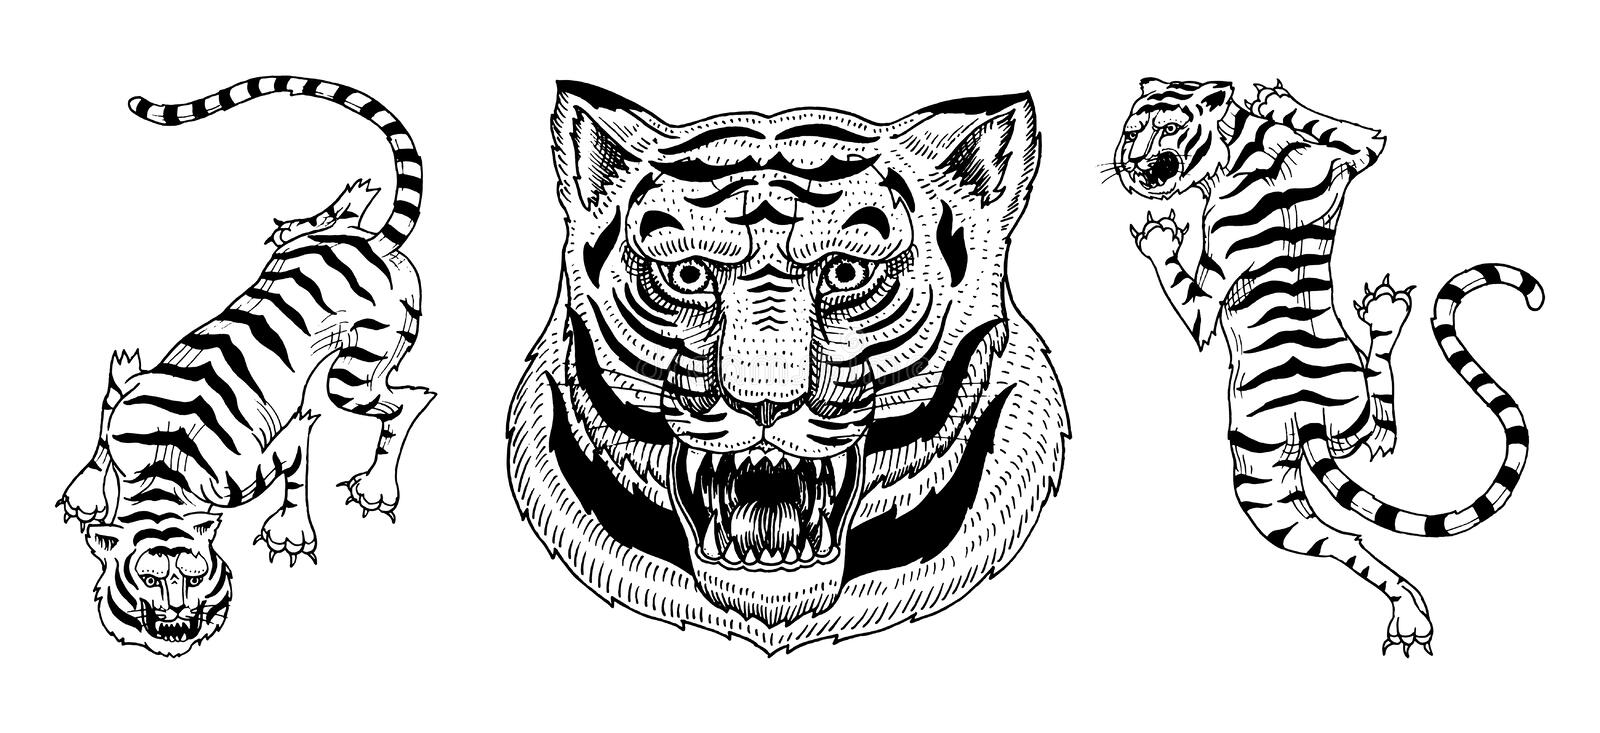 Asian tigers in vintage japanese style for logo. Face Close up. Wild animals cats. Predators from the jungle. Hand drawn. Engraved Monochrome Old Sketch for royalty free illustration